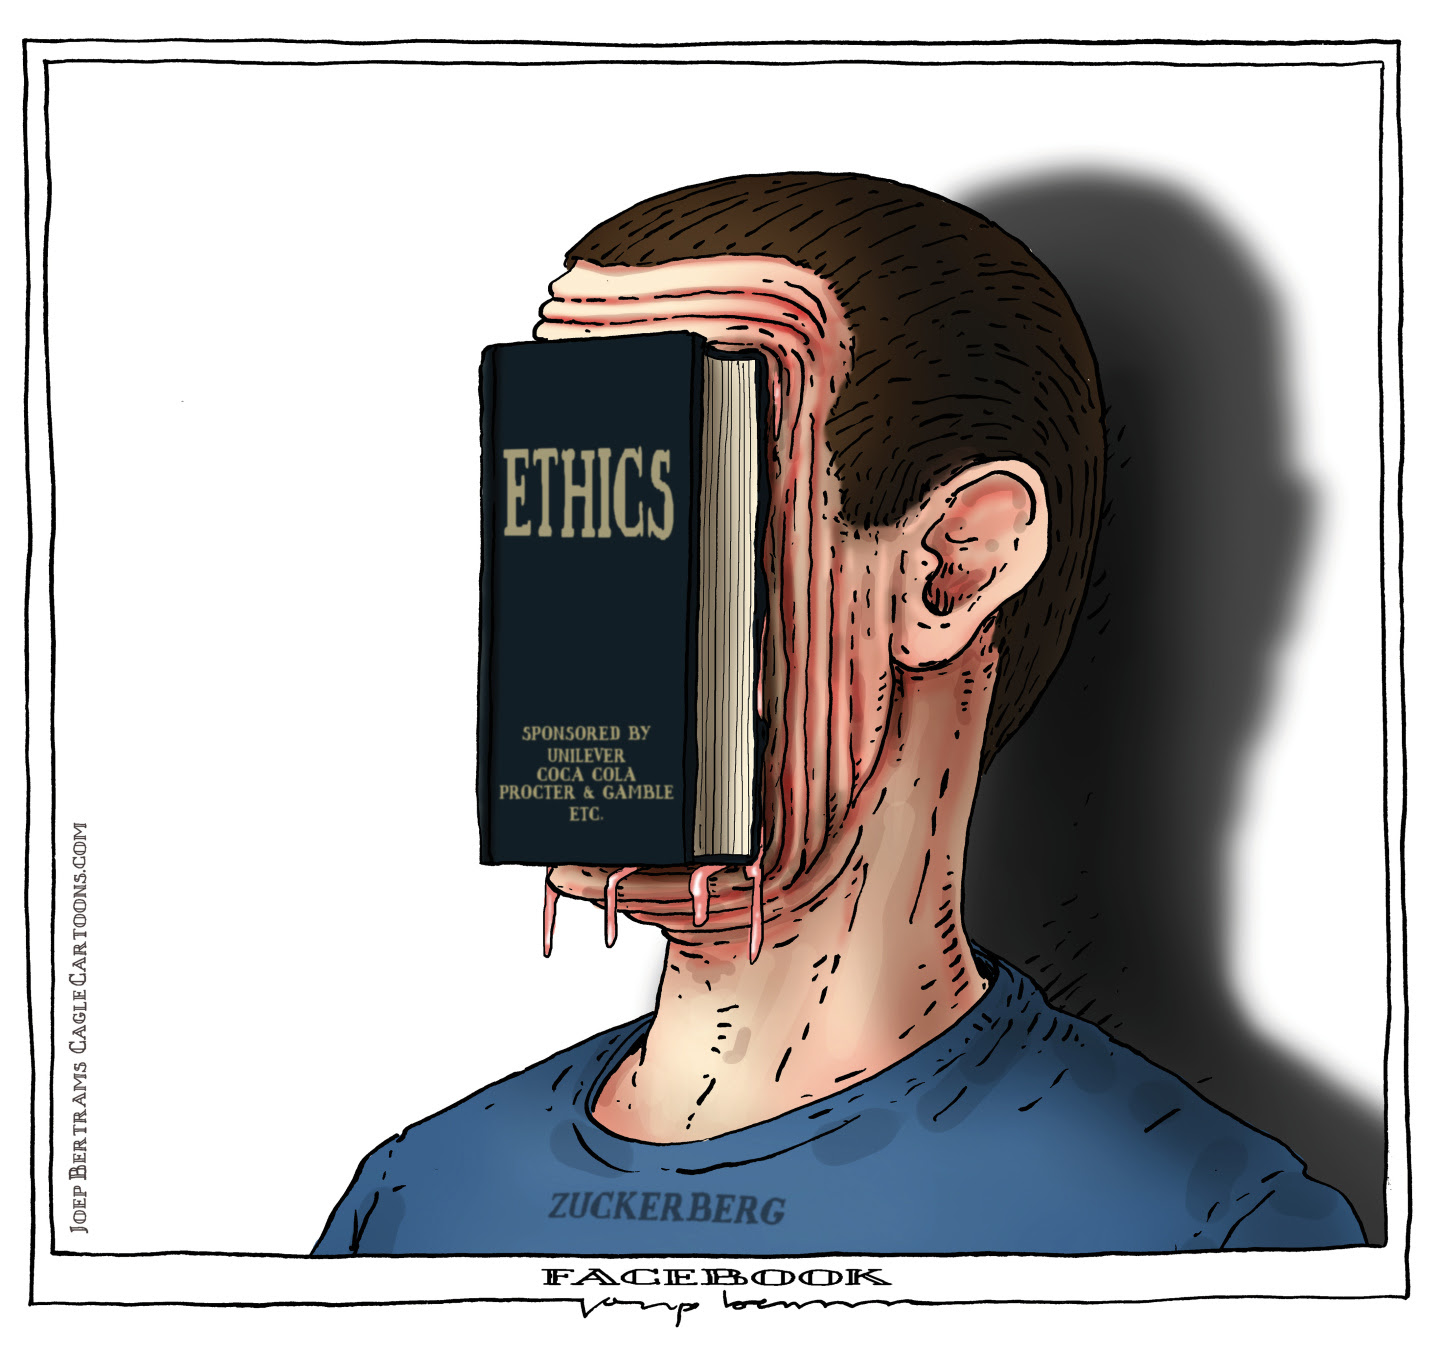 Facebook and Zuckerberg ignore their ethical responsibilities.